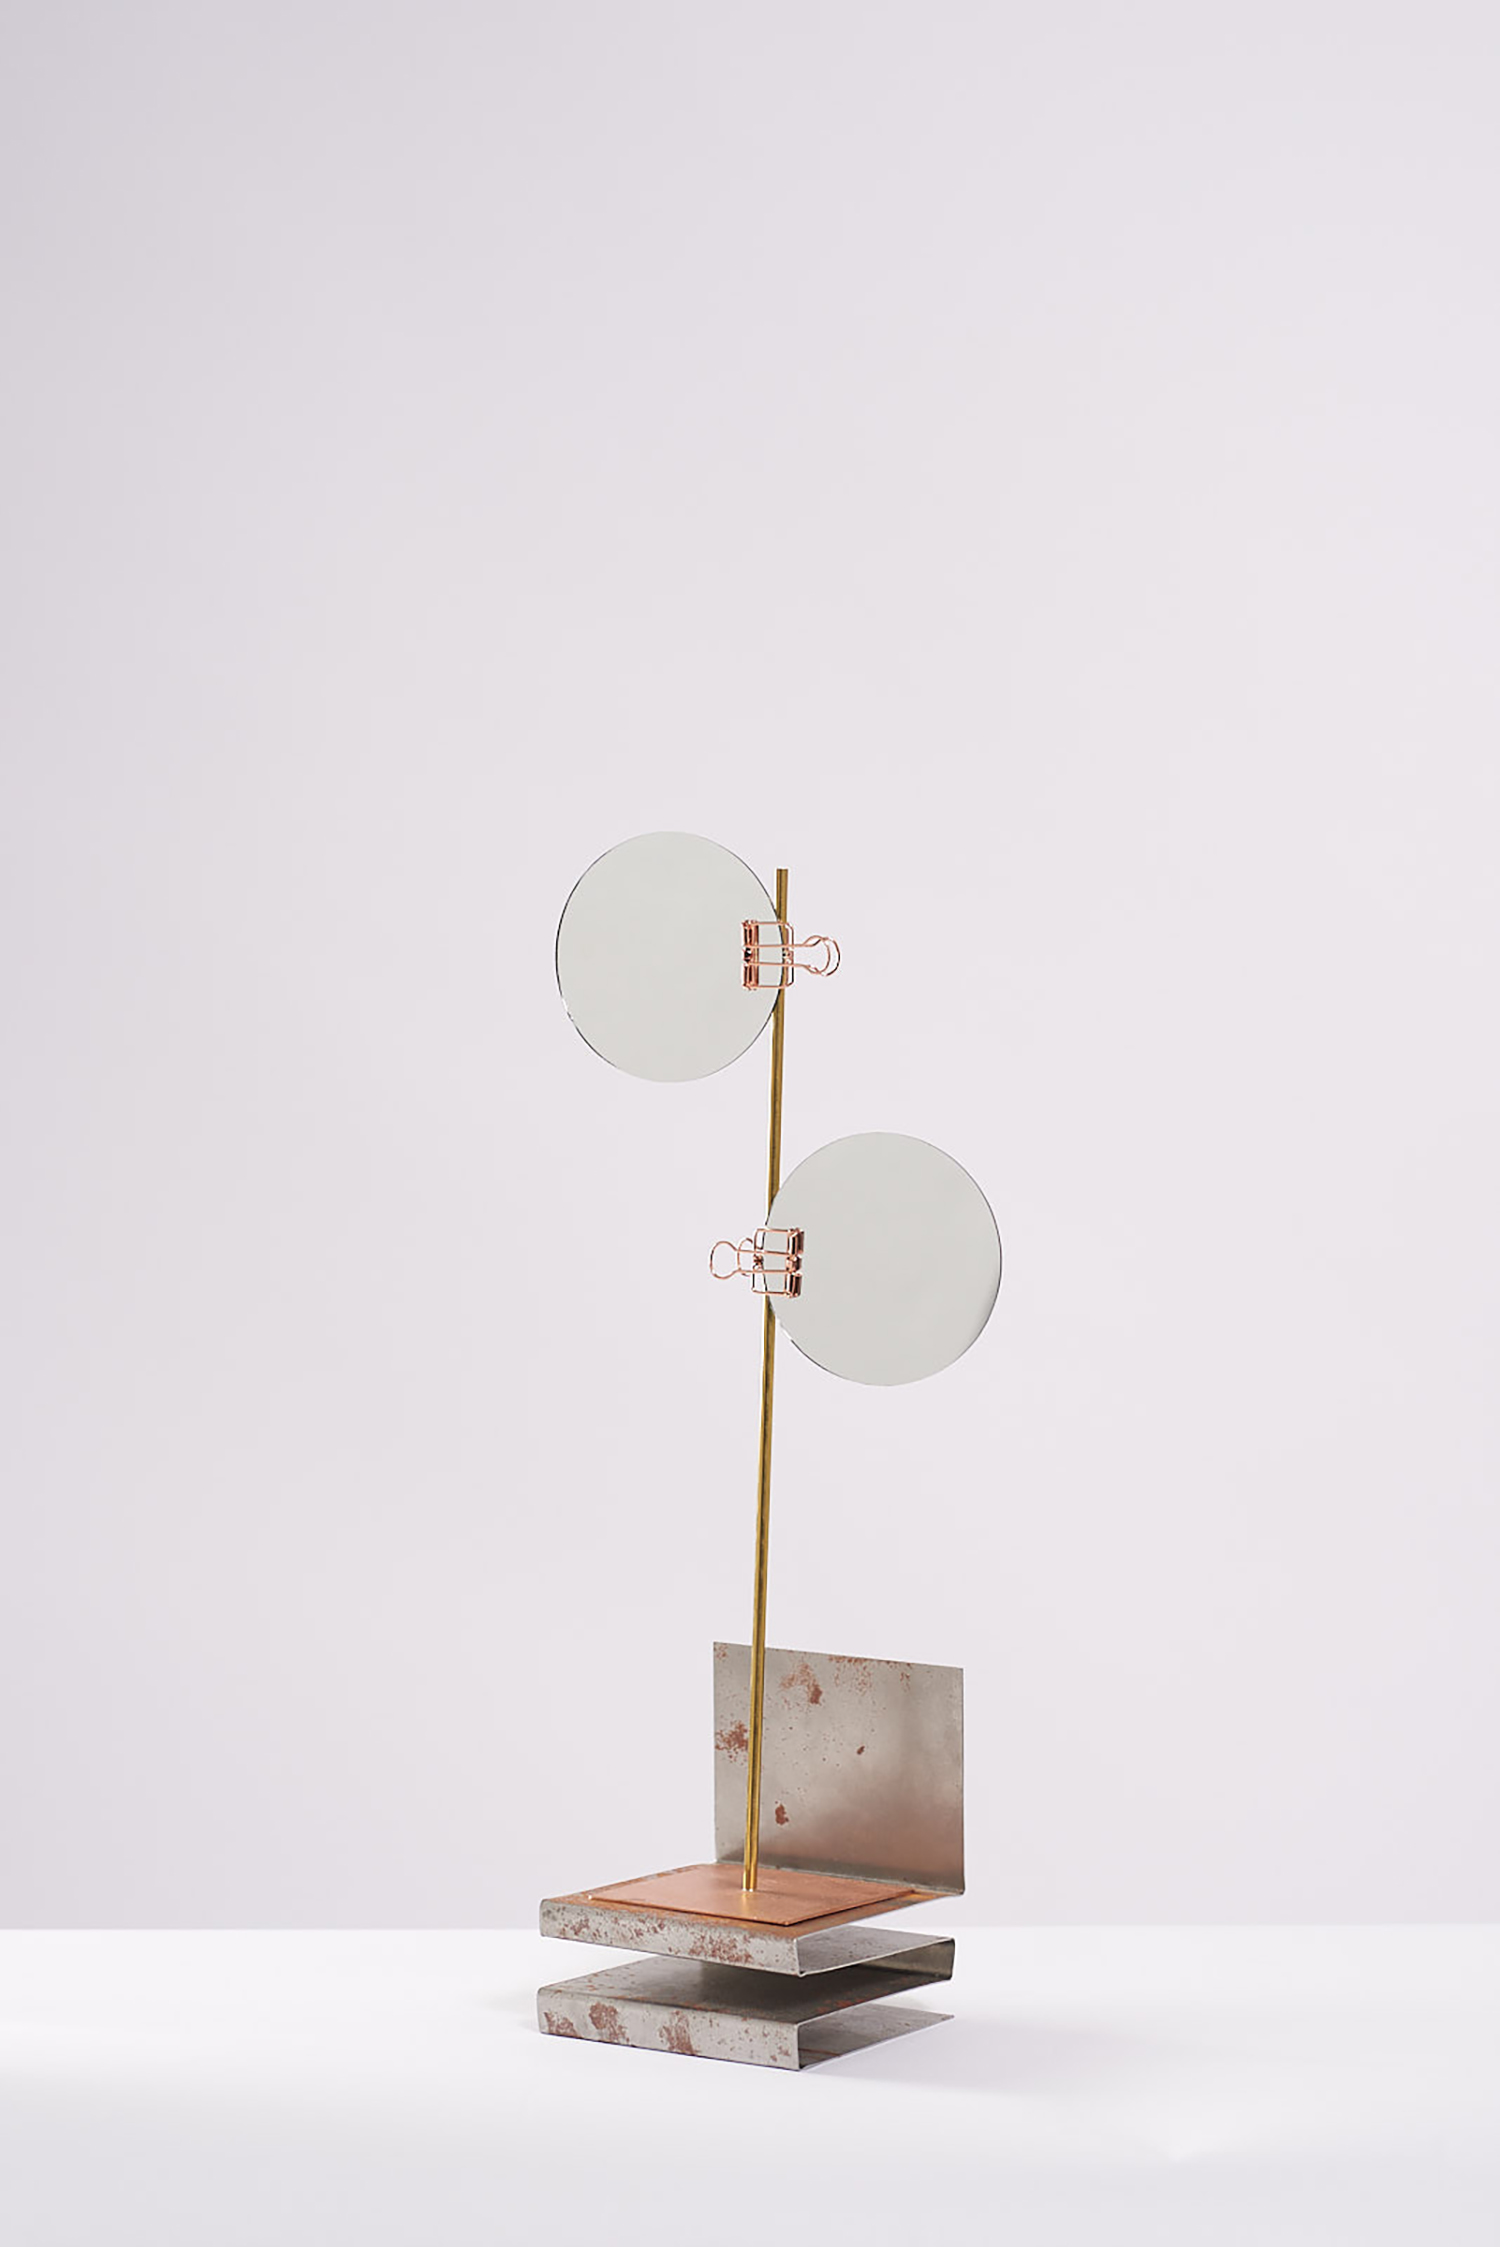 Meredith Turnbull - Standing sculpture twin mirror, 2019copper, brass, copper clips, mirror, enamel paint, steel36 x 15 x 10cm$600Enquire >>